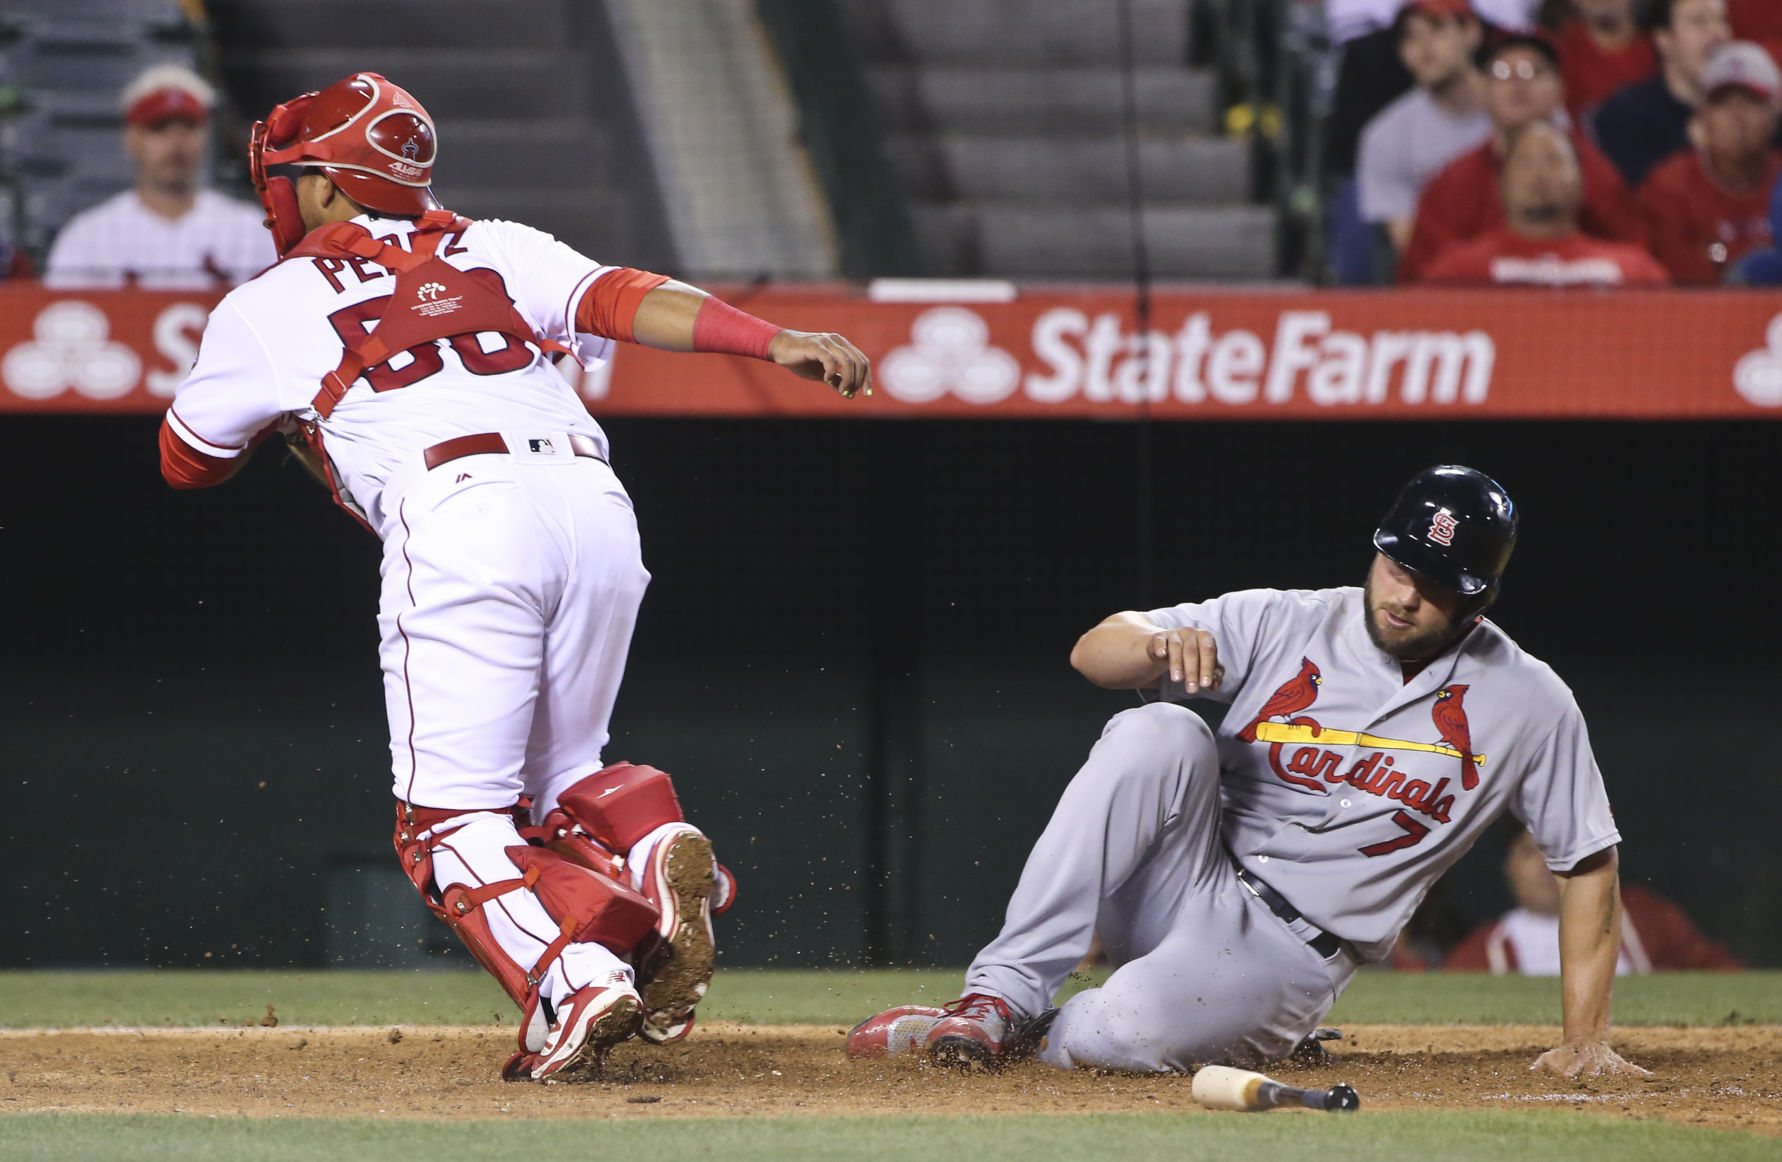 Cardinals notes: Boras praises Holliday's versatility